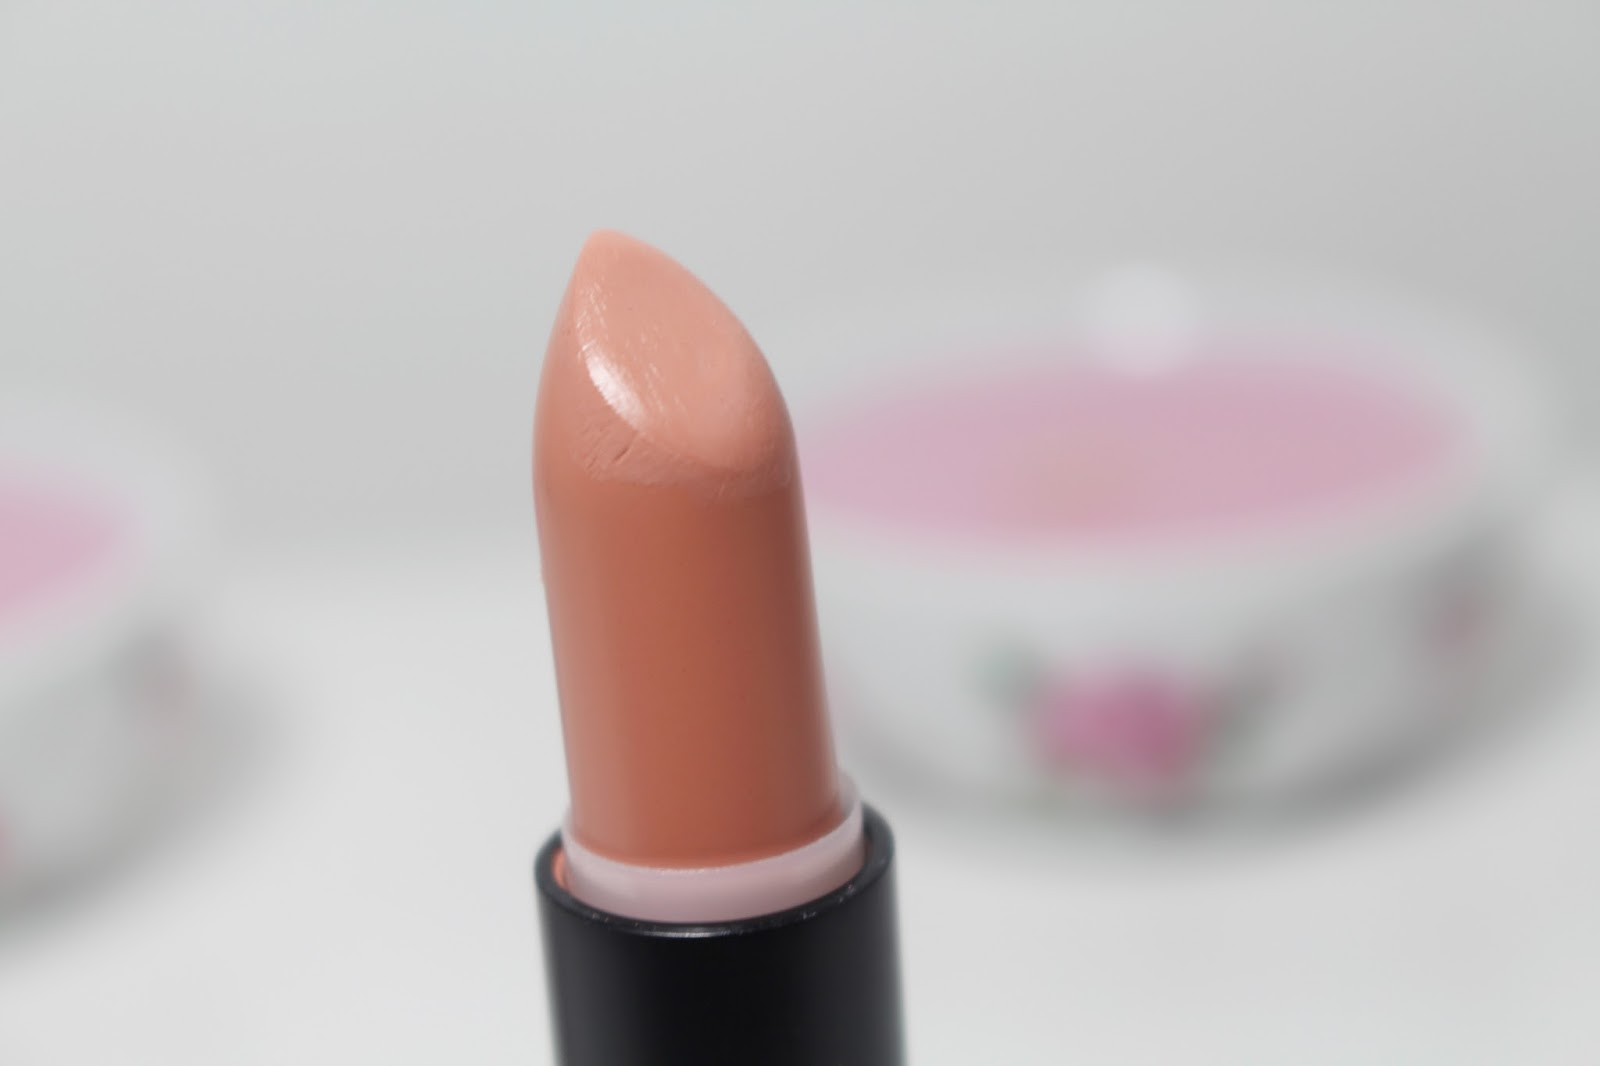 Topshop Lipstick in Nevada Review